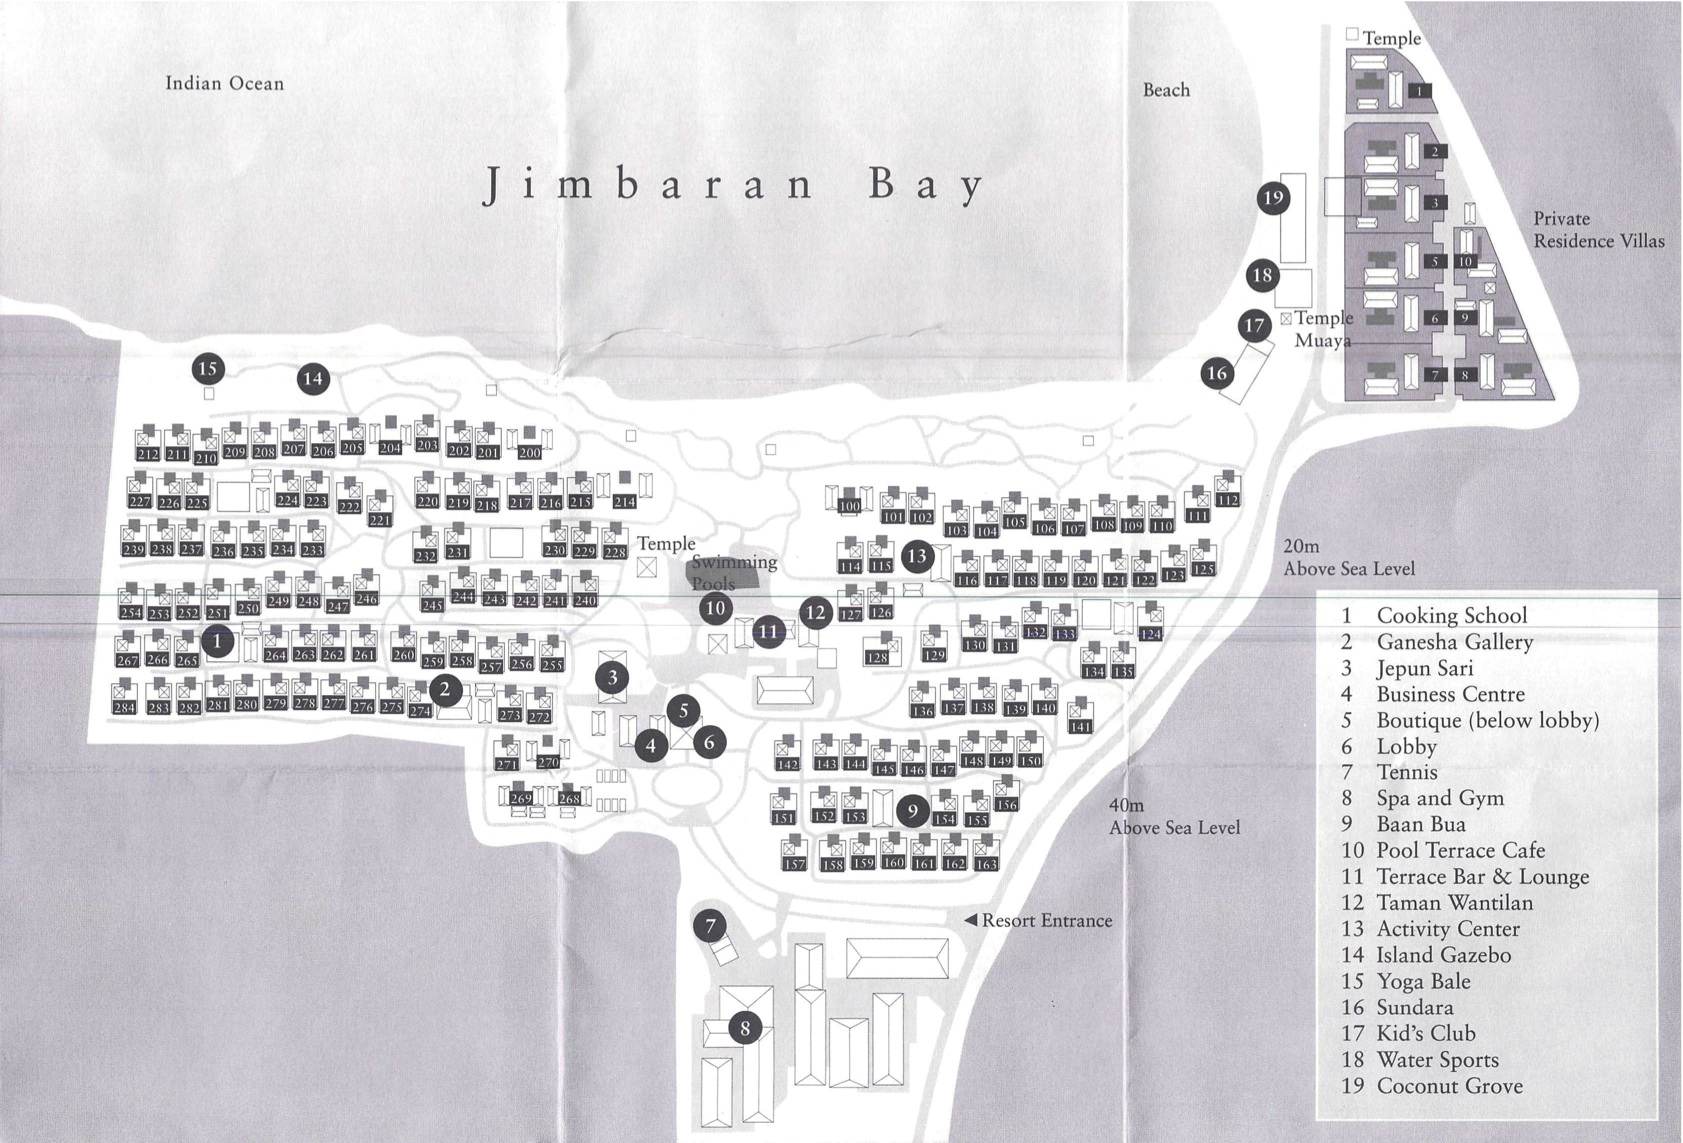 Fs Jimbaran Bay Hotel Vs Residences Page 2 Flyertalk Forums Voucher Resort Bali Four Seasons Resorts At Sayan The Map Also Shows New Sundara Restaurant And Other Changes To